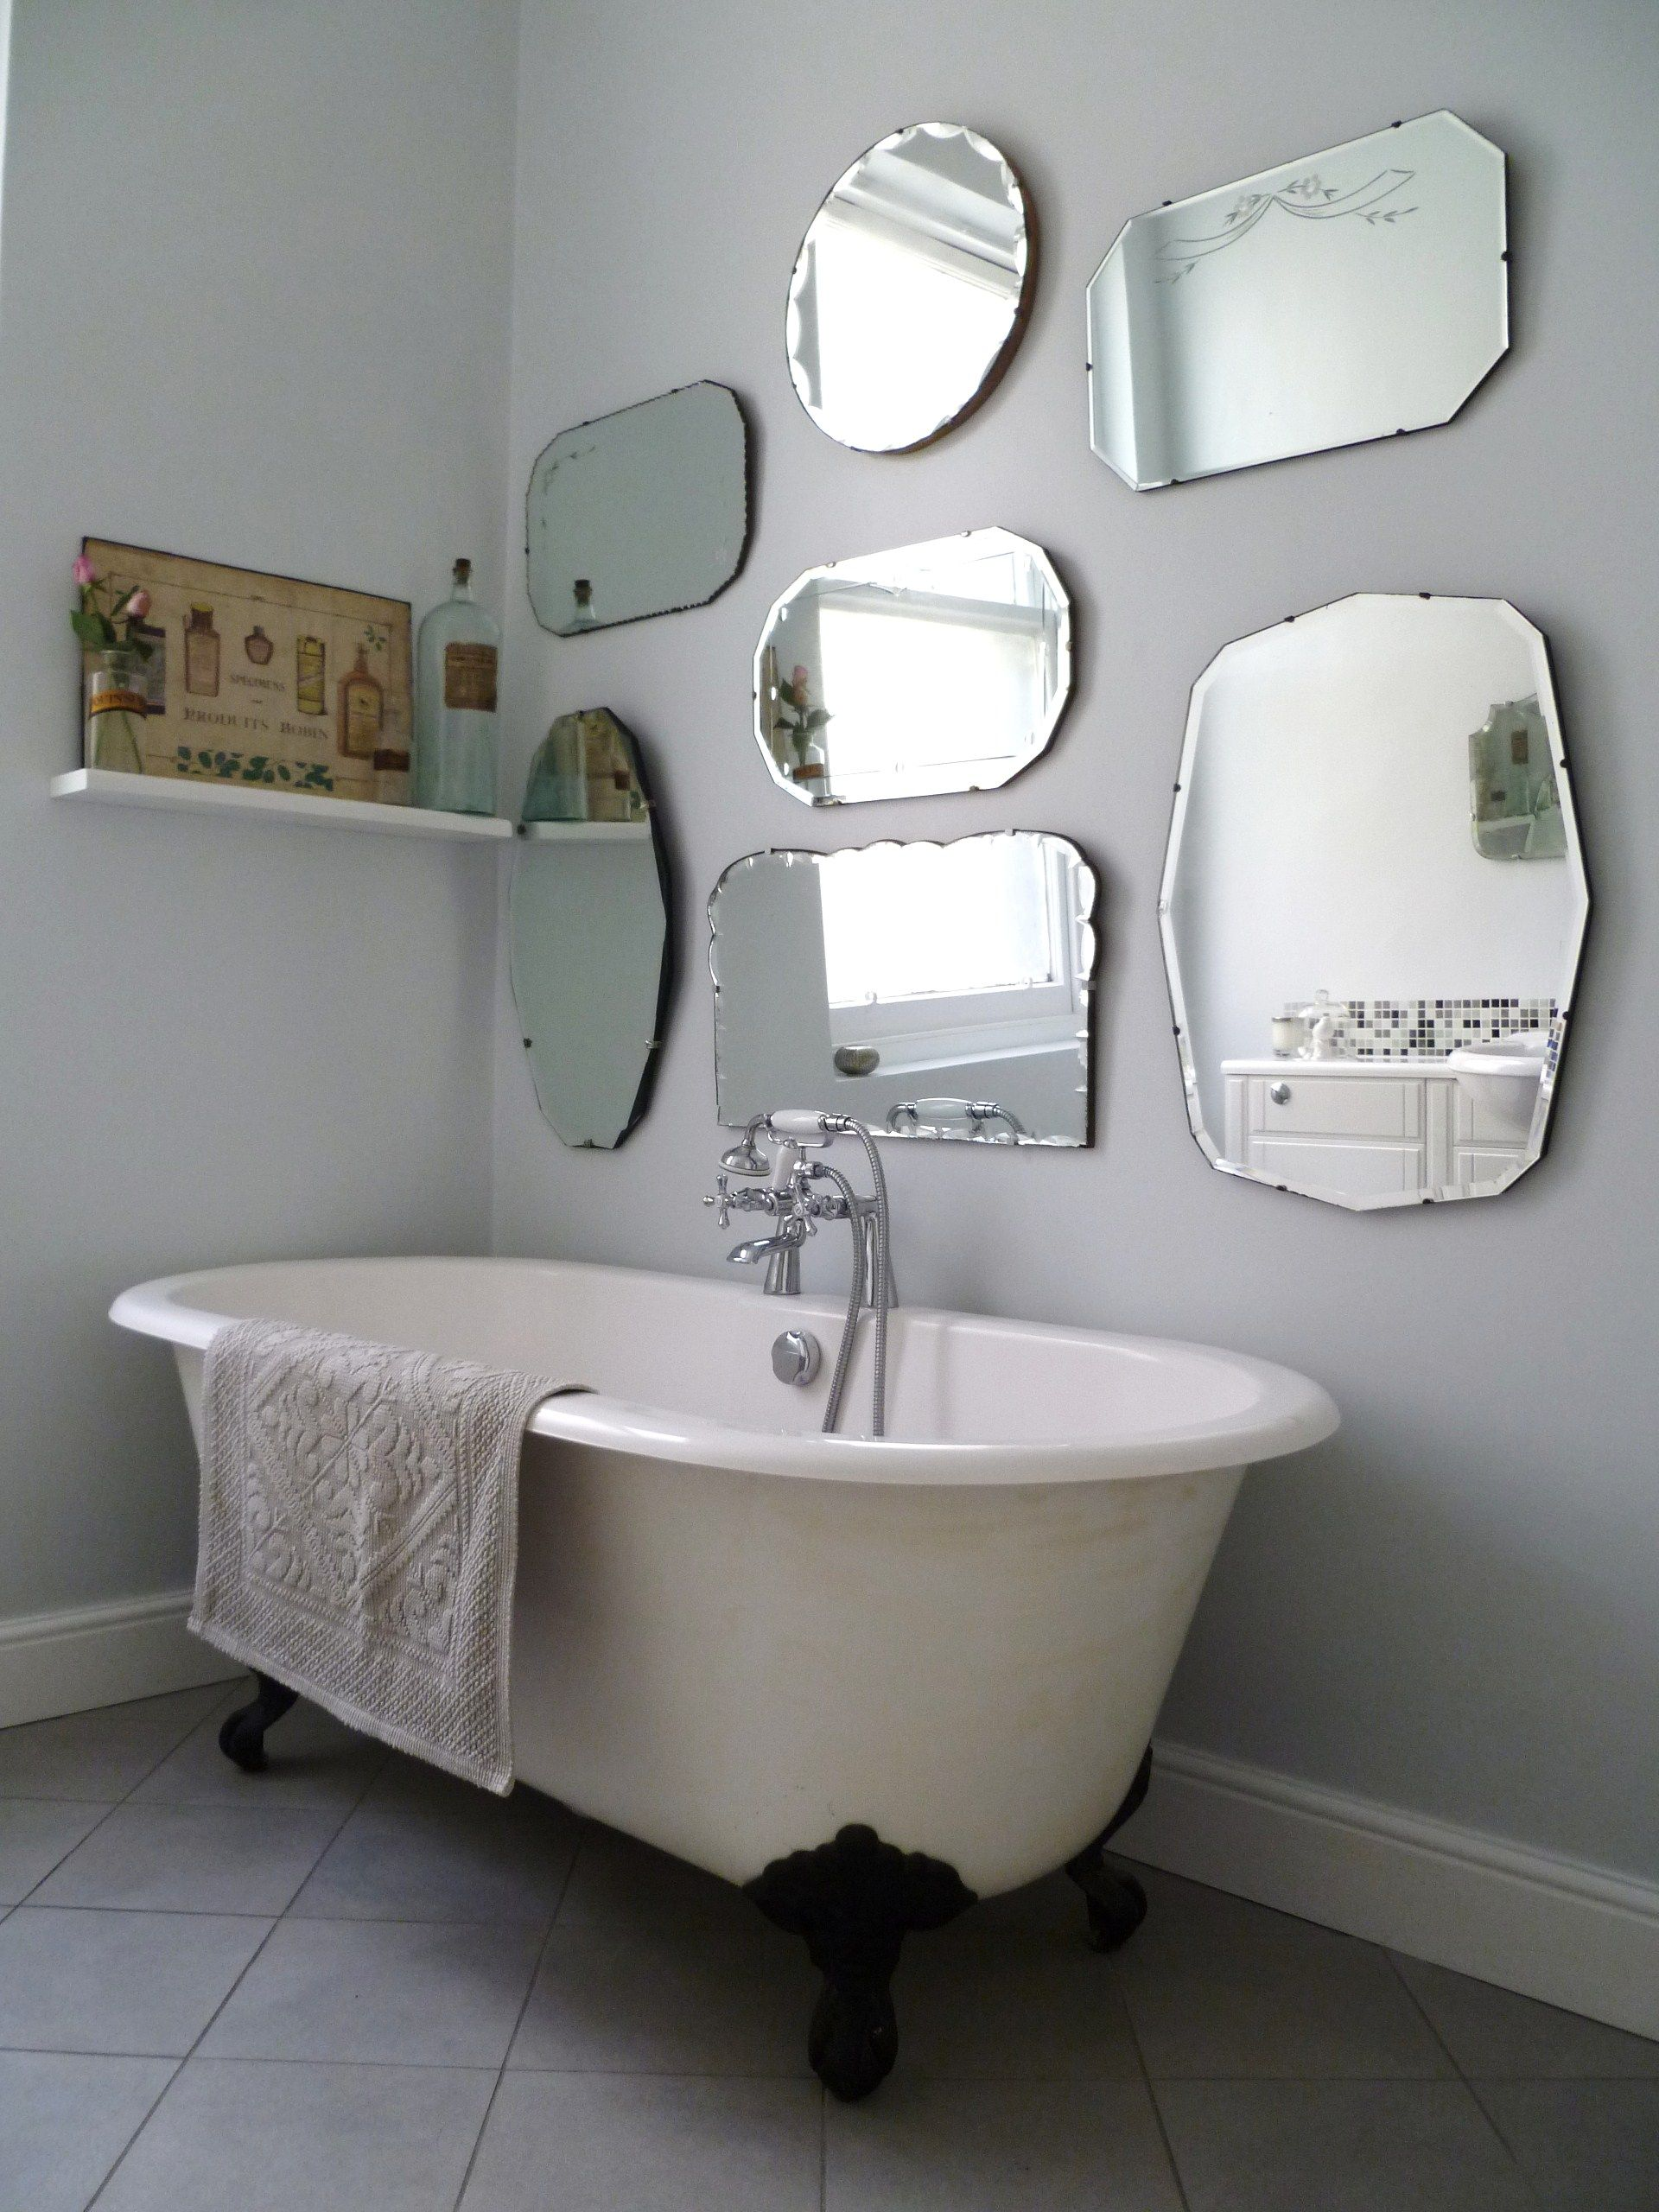 How To Hang A Display Of Vintage Mirrors Bathroom Mirror Design